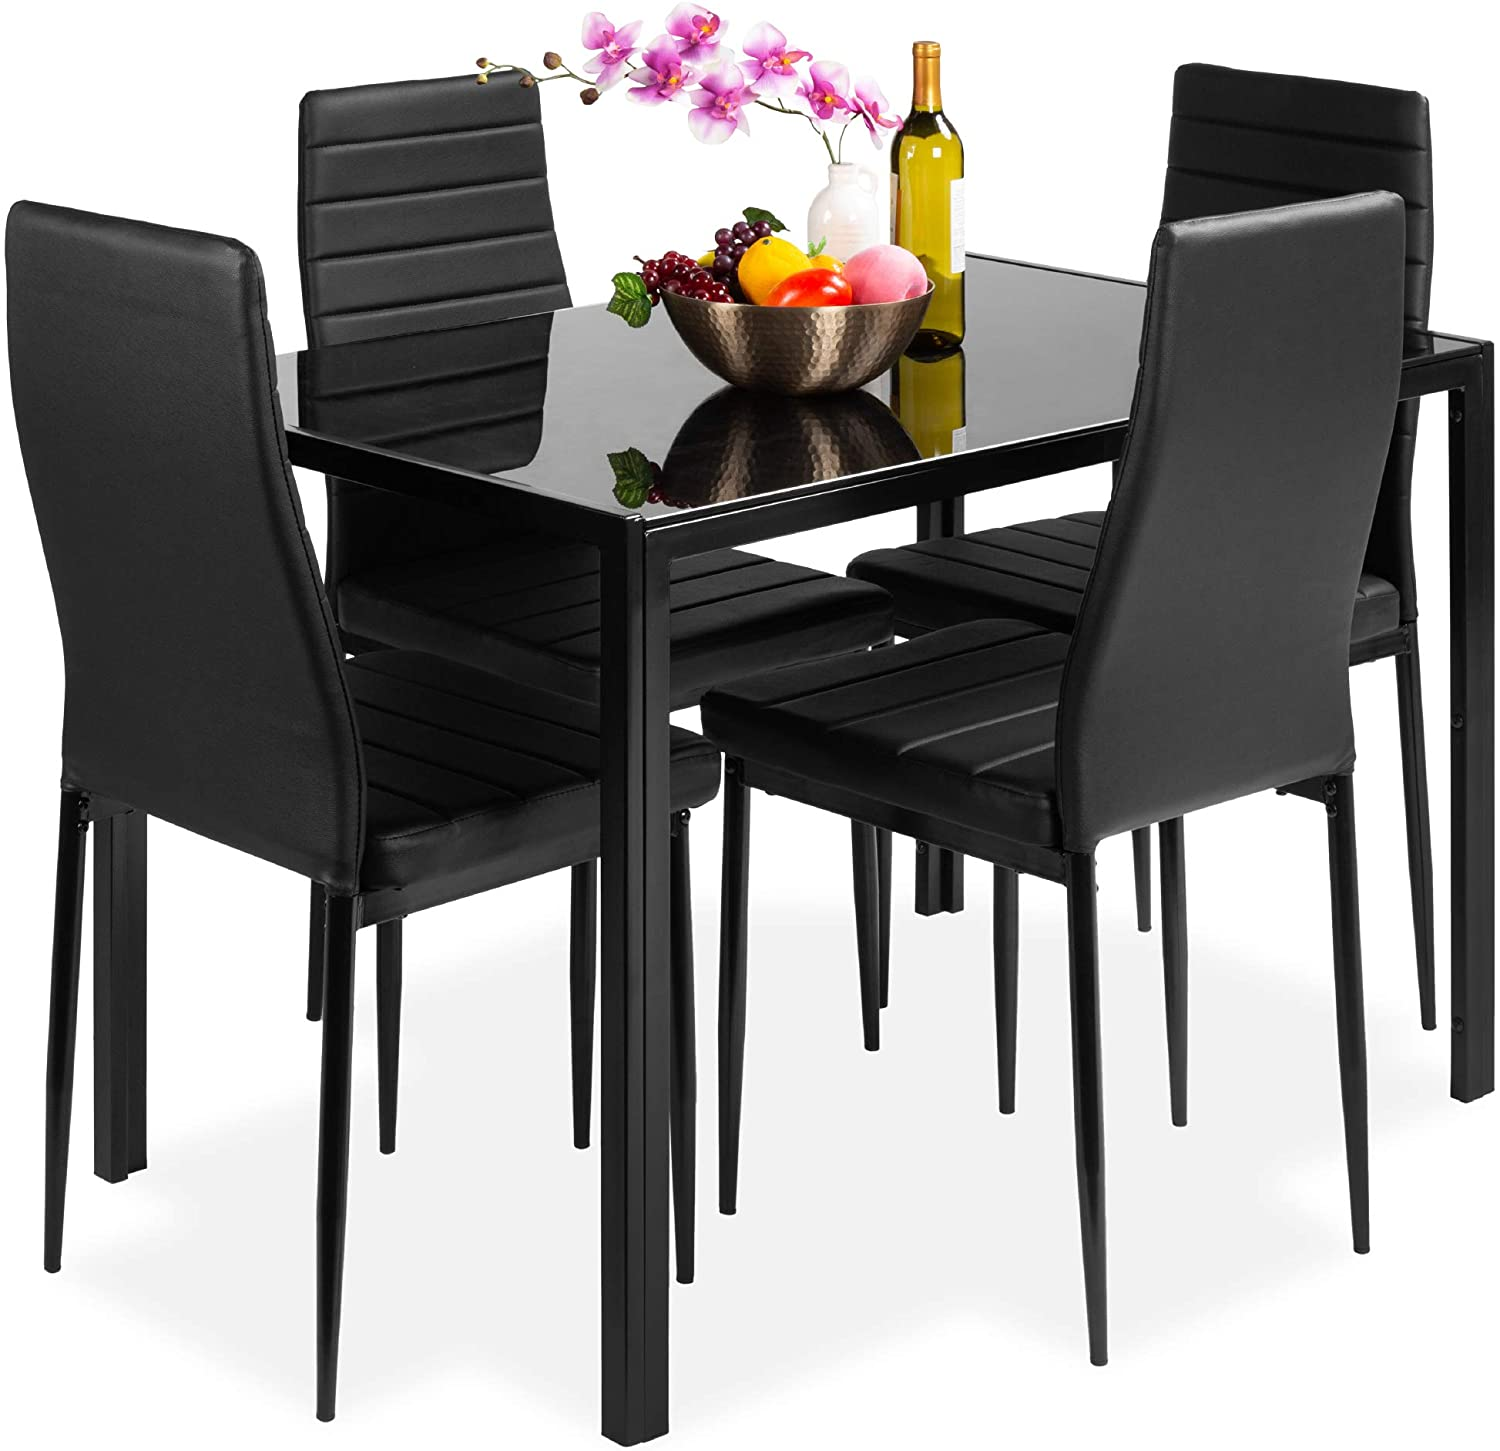 Best Choice Products 5-Piece Kitchen Dining Table Set for Dining Room, Kitchen, Dinette, Compact Space w/Glass Tabletop, 4 Faux Leather Metal Frame Chairs - Black - Table & Chair Sets